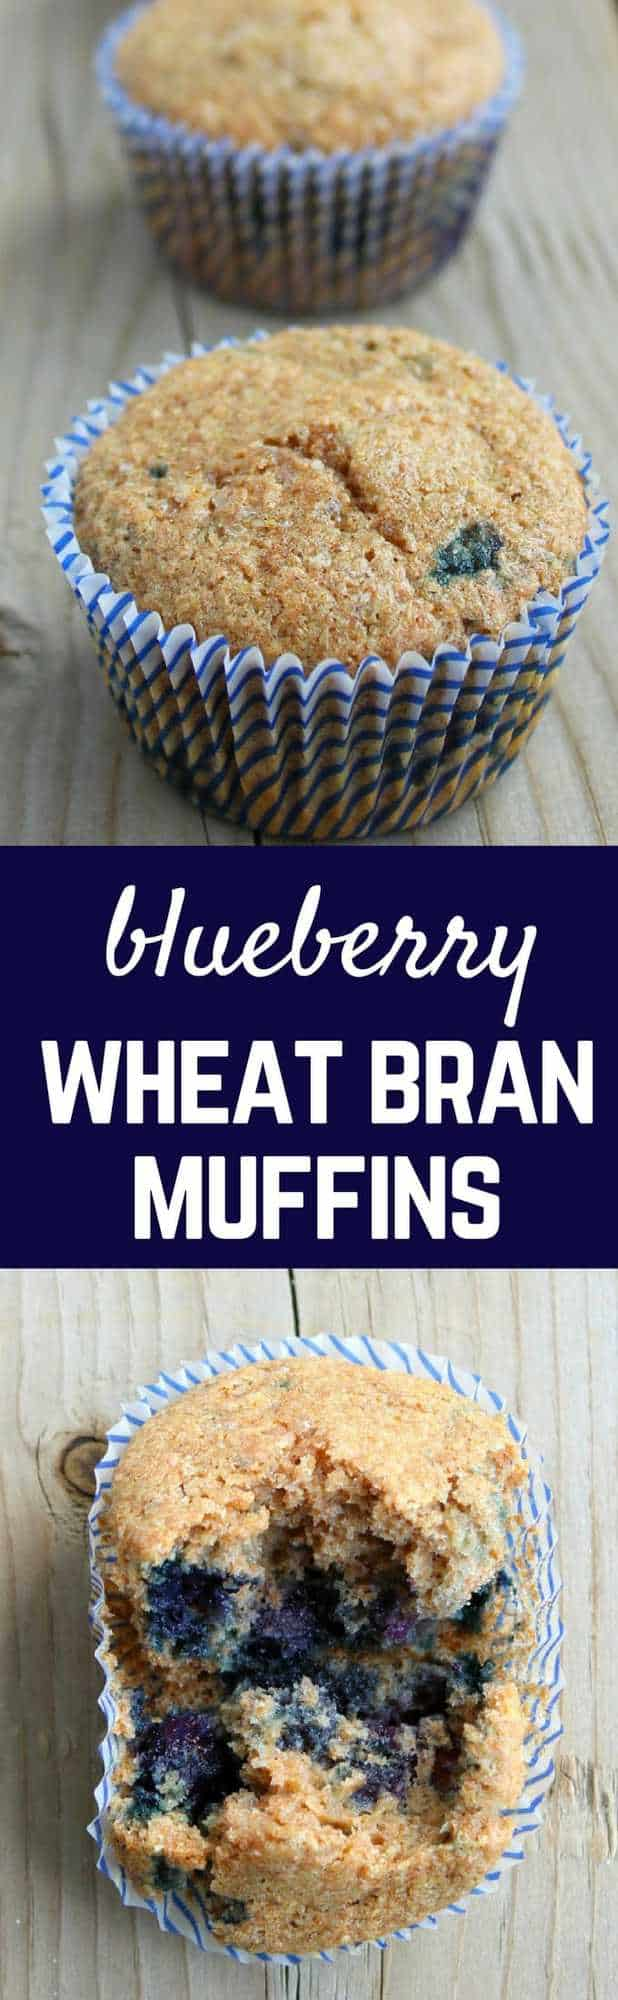 Blueberry wheat bran muffins are a healthy and quick breakfast. Hearty and filling, these will get your day off to a great start! Get the recipe on RachelCooks.com!